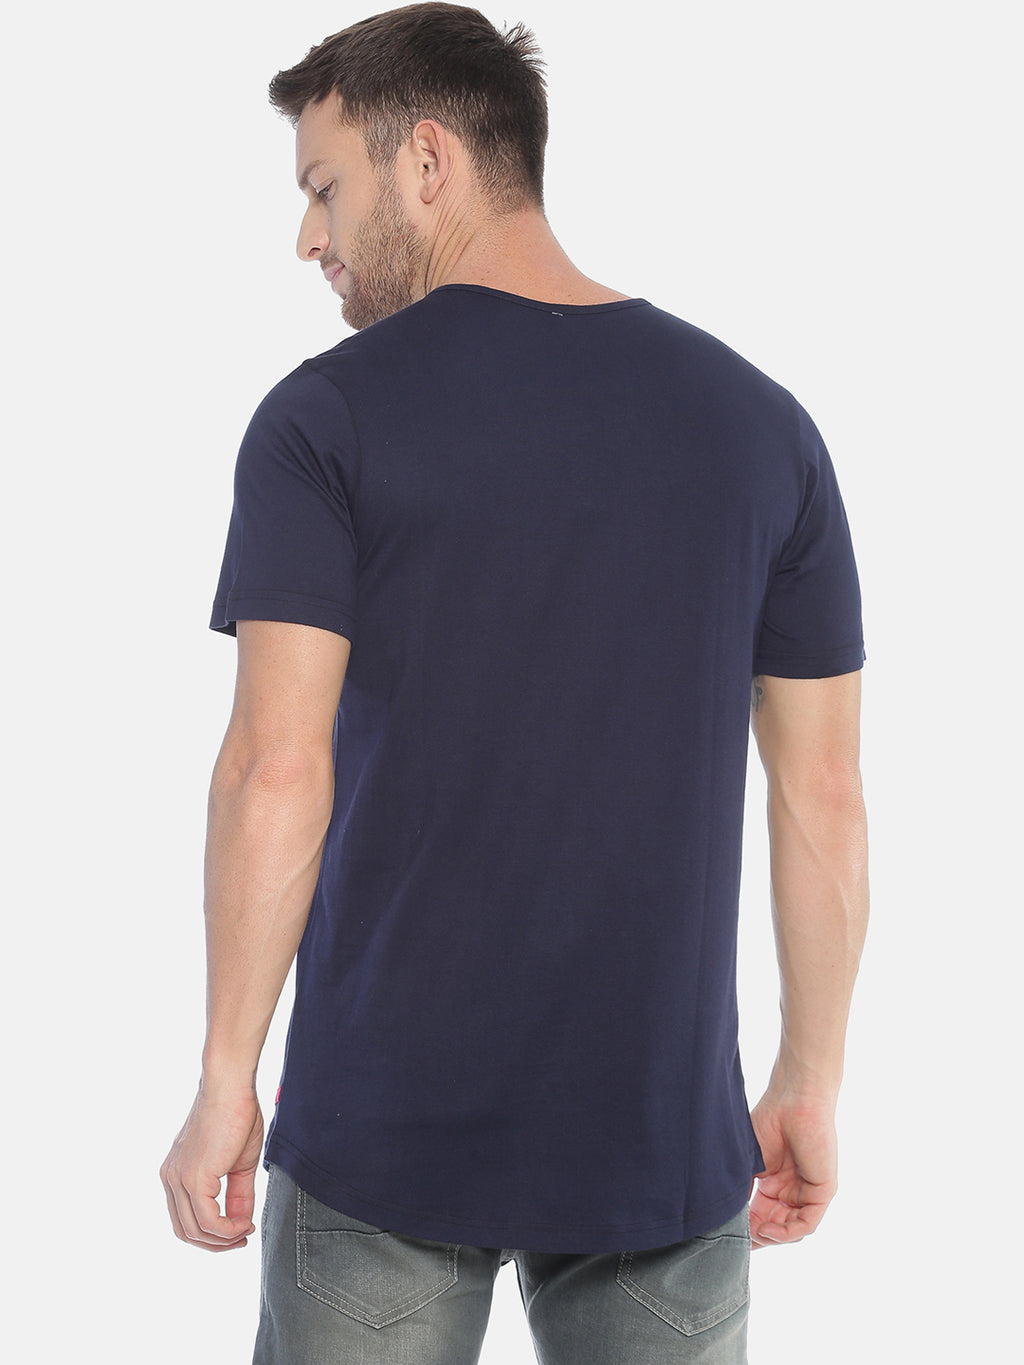 Kultprit Square Neck T-Shirt for Men